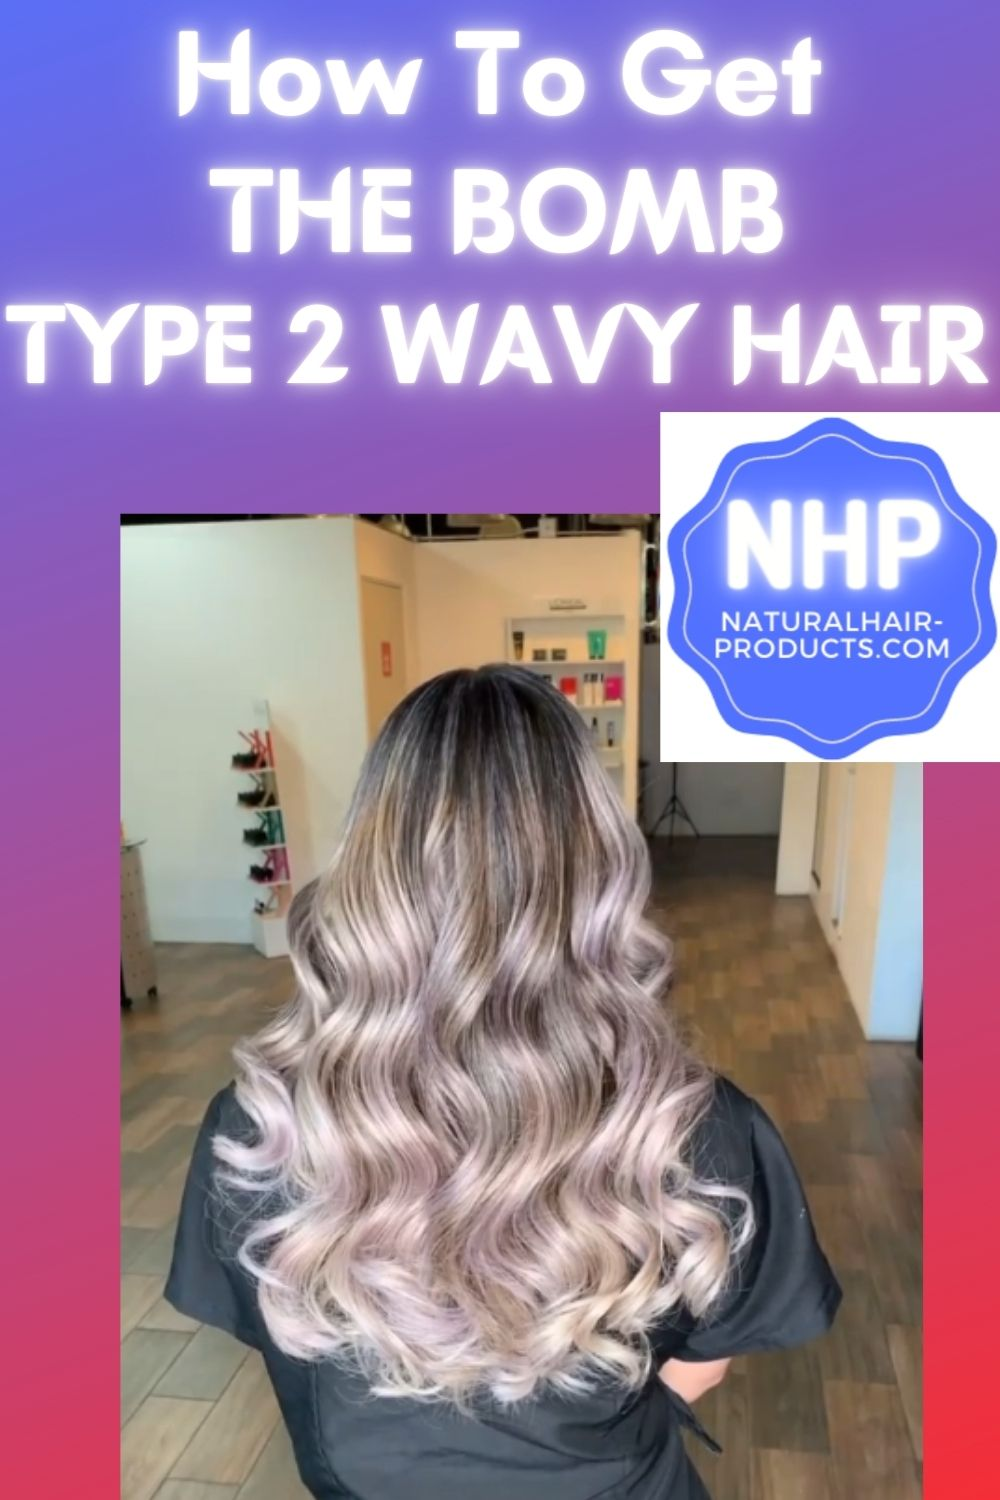 type 2 wavy natural hair styling, nhp type 2a, 2b, 2c